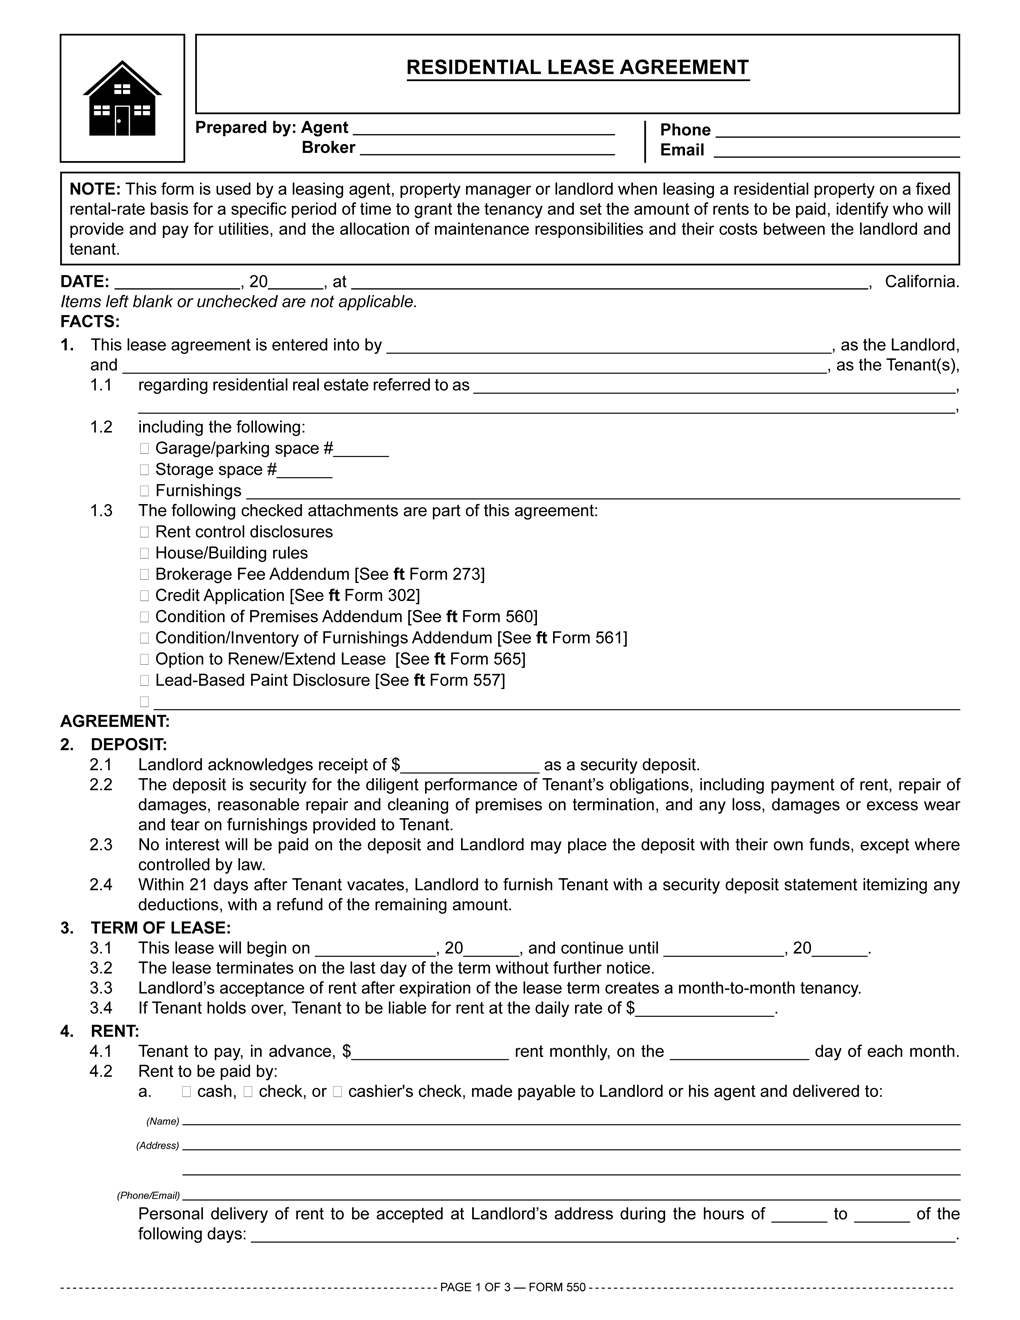 Residential Lease Agreement RPI Form 550 – Residential Rent Agreement Format